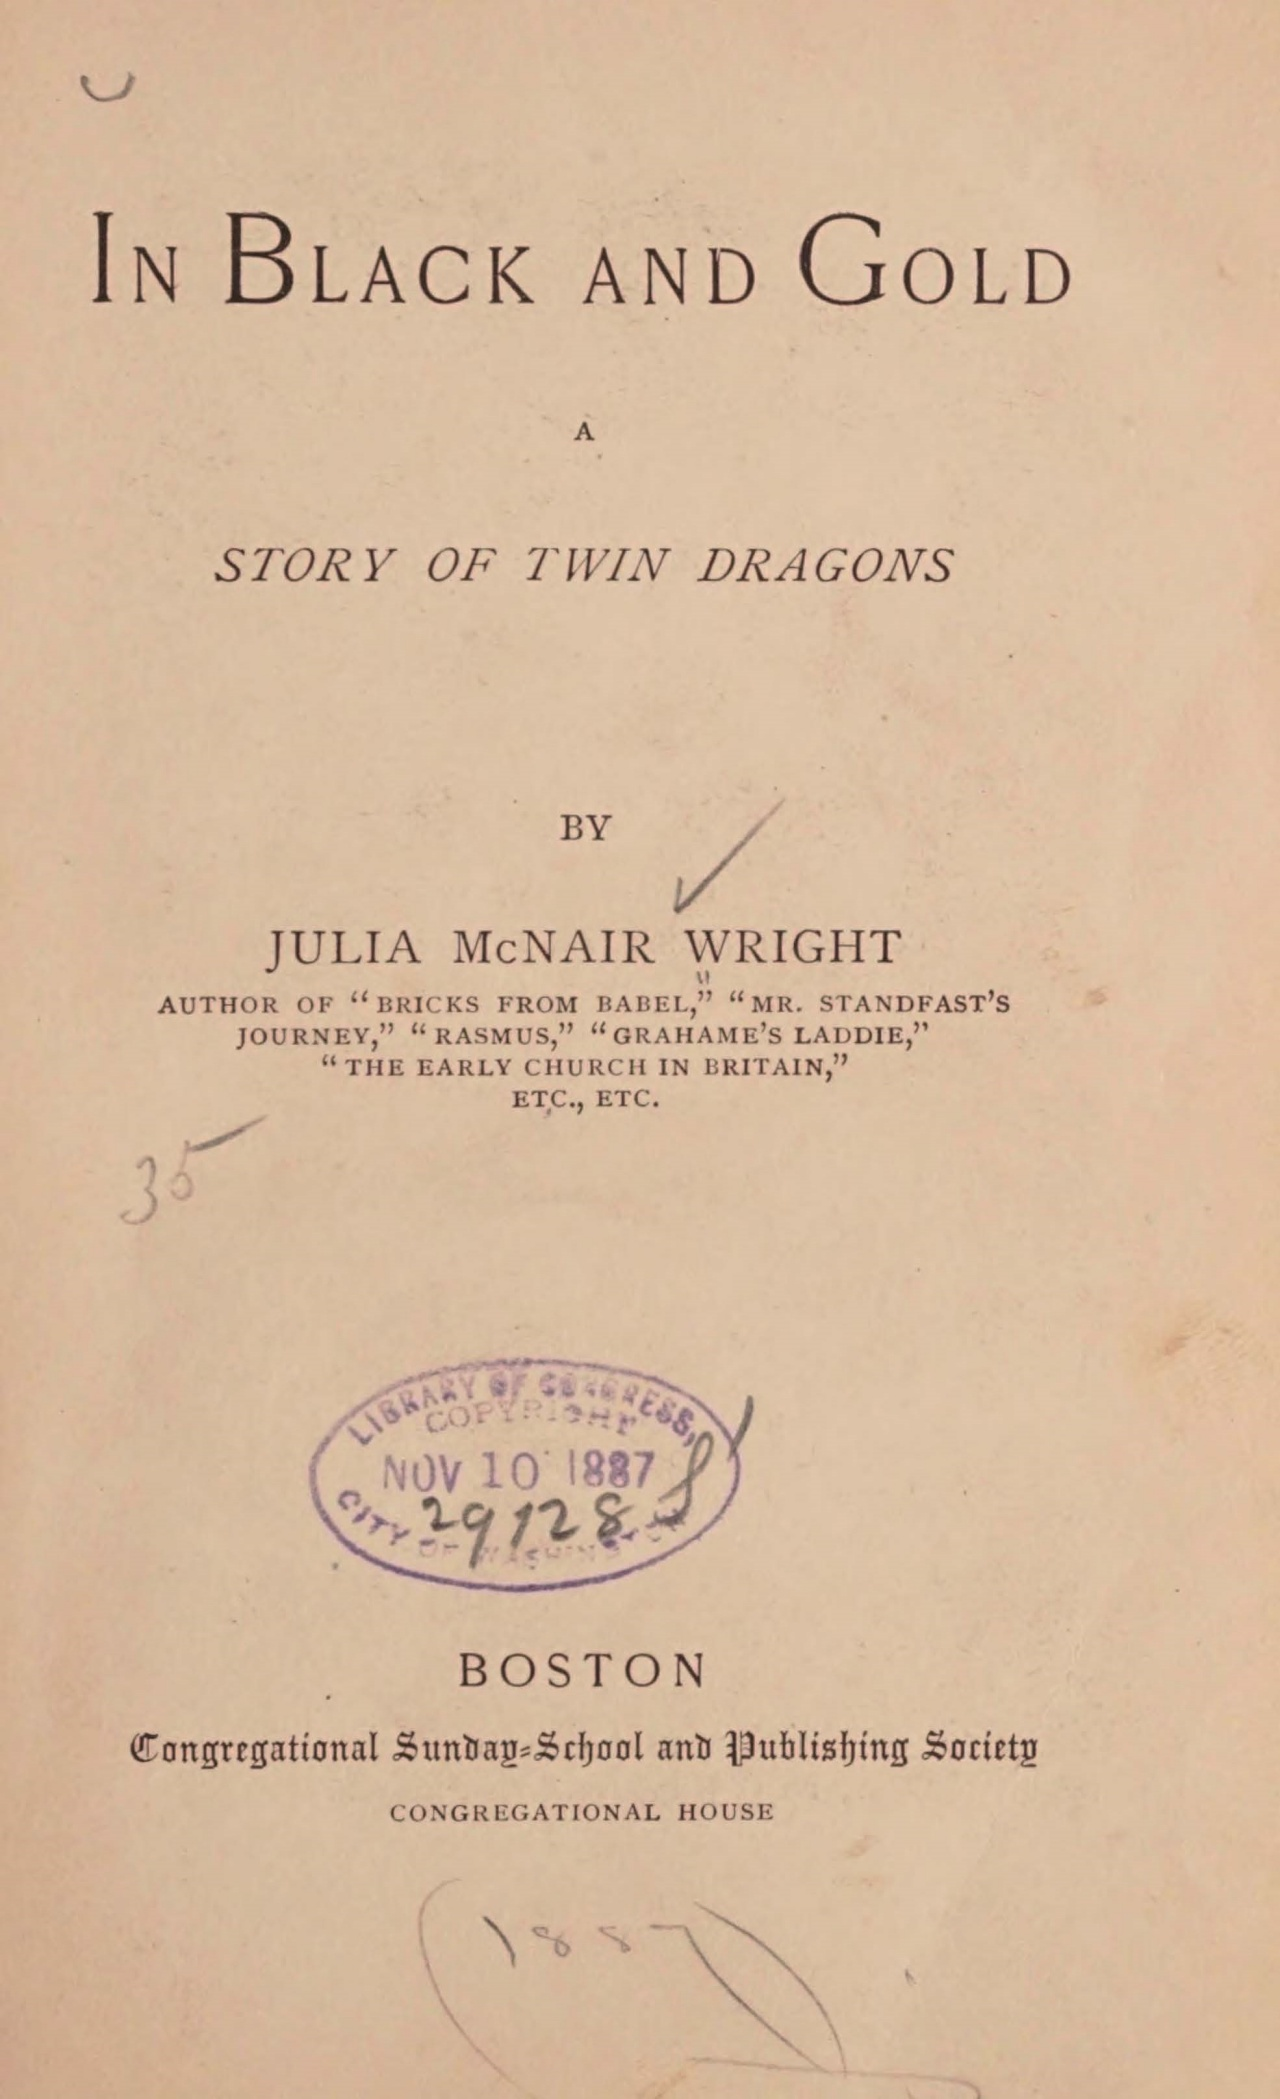 Wright, Julia McNair, In Black and Gold Title Page.jpg